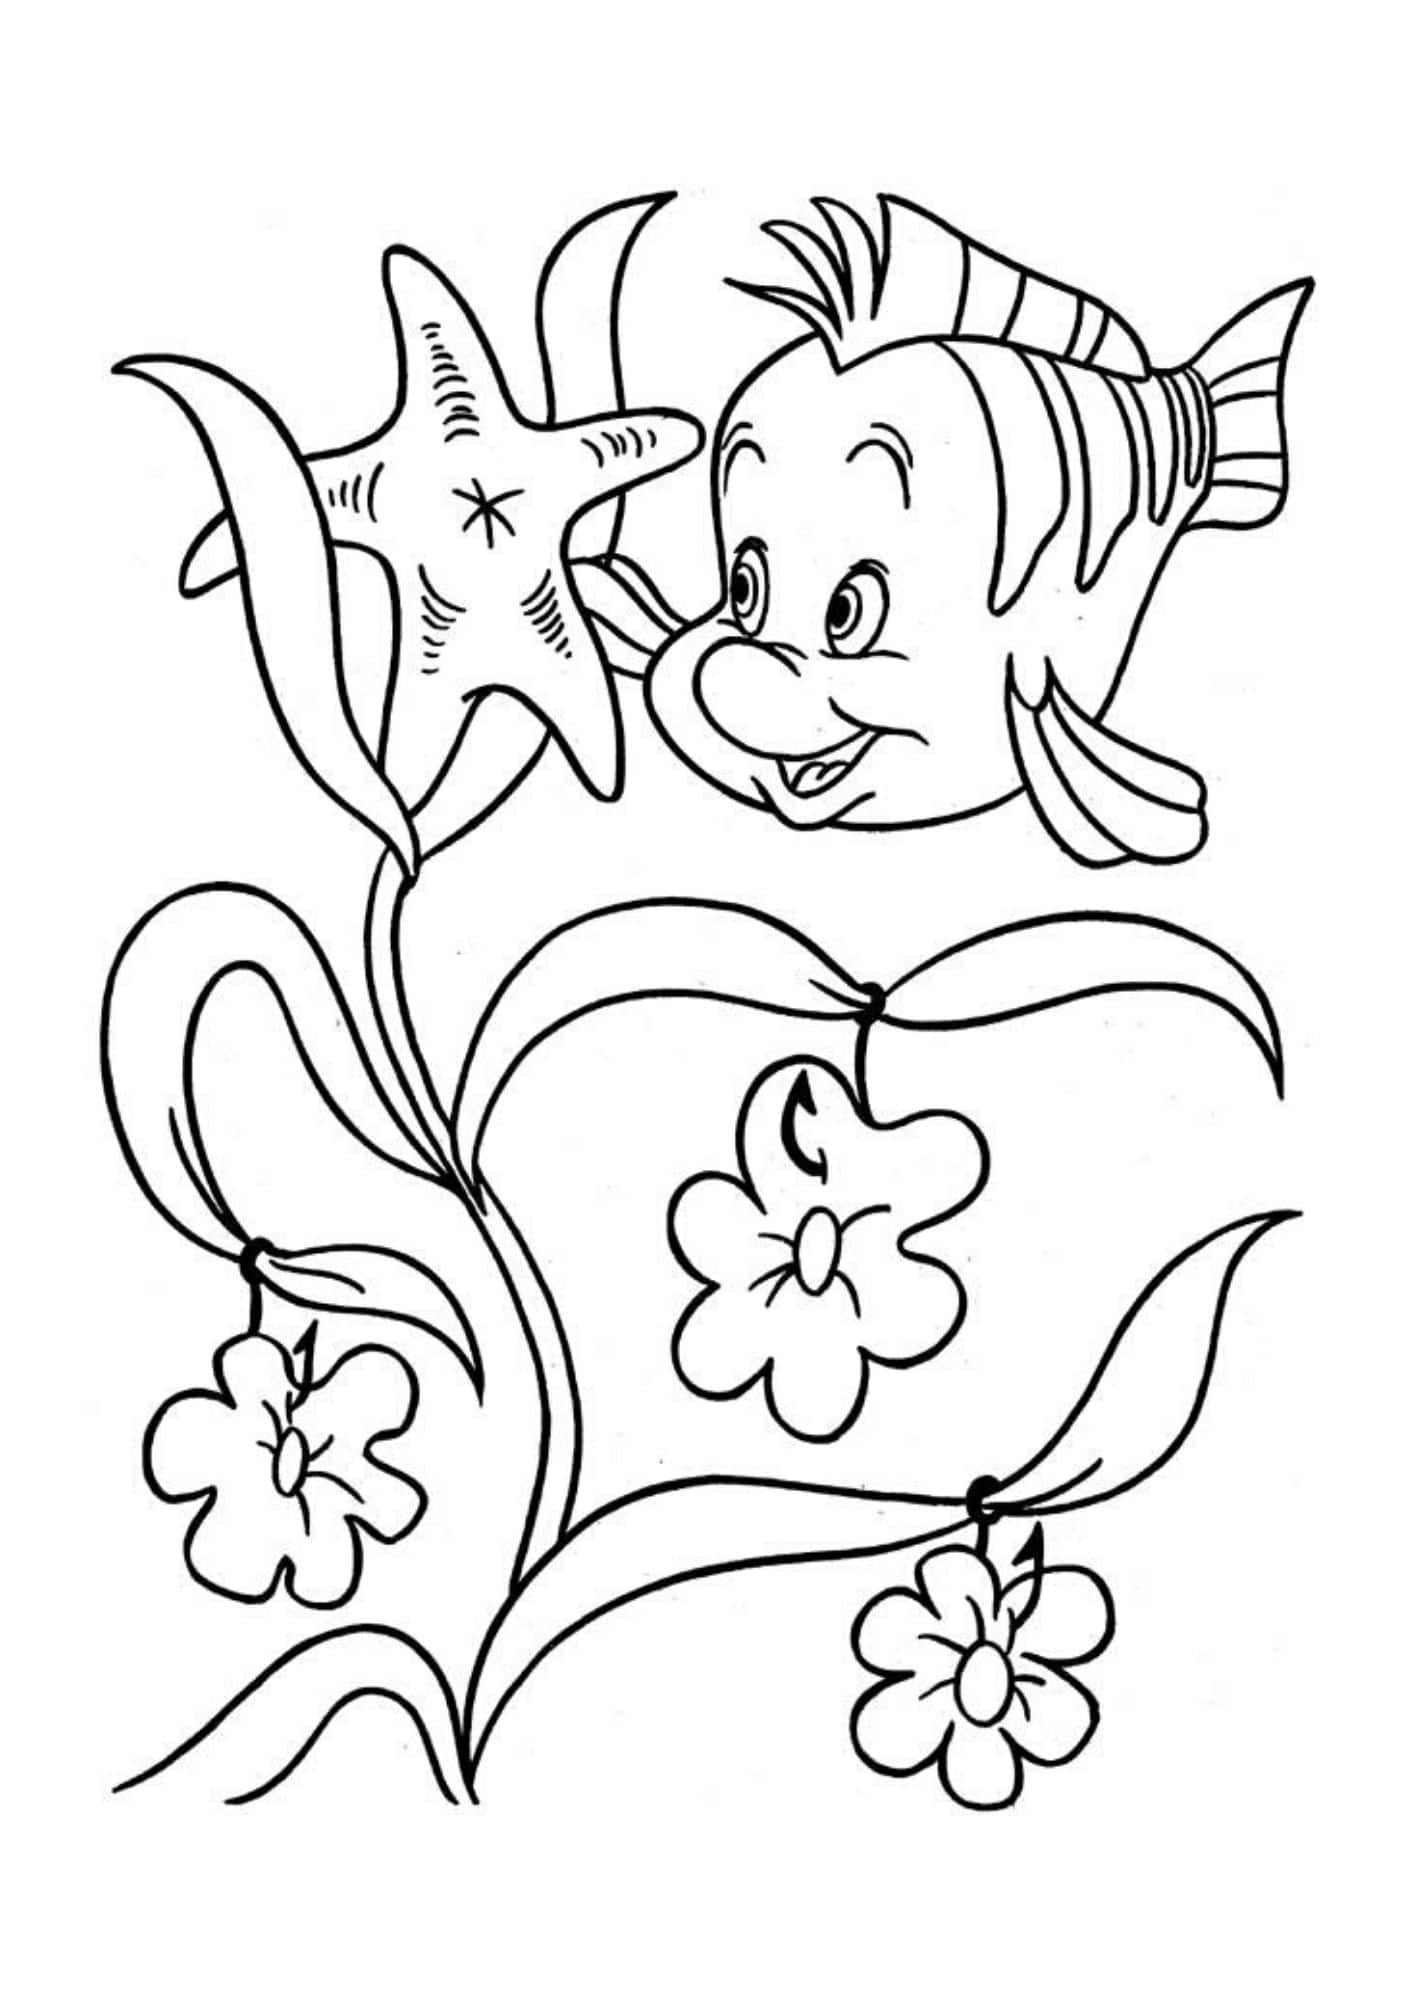 kids drawings for colouring doodle art to color for children doodle art kids drawings kids for colouring